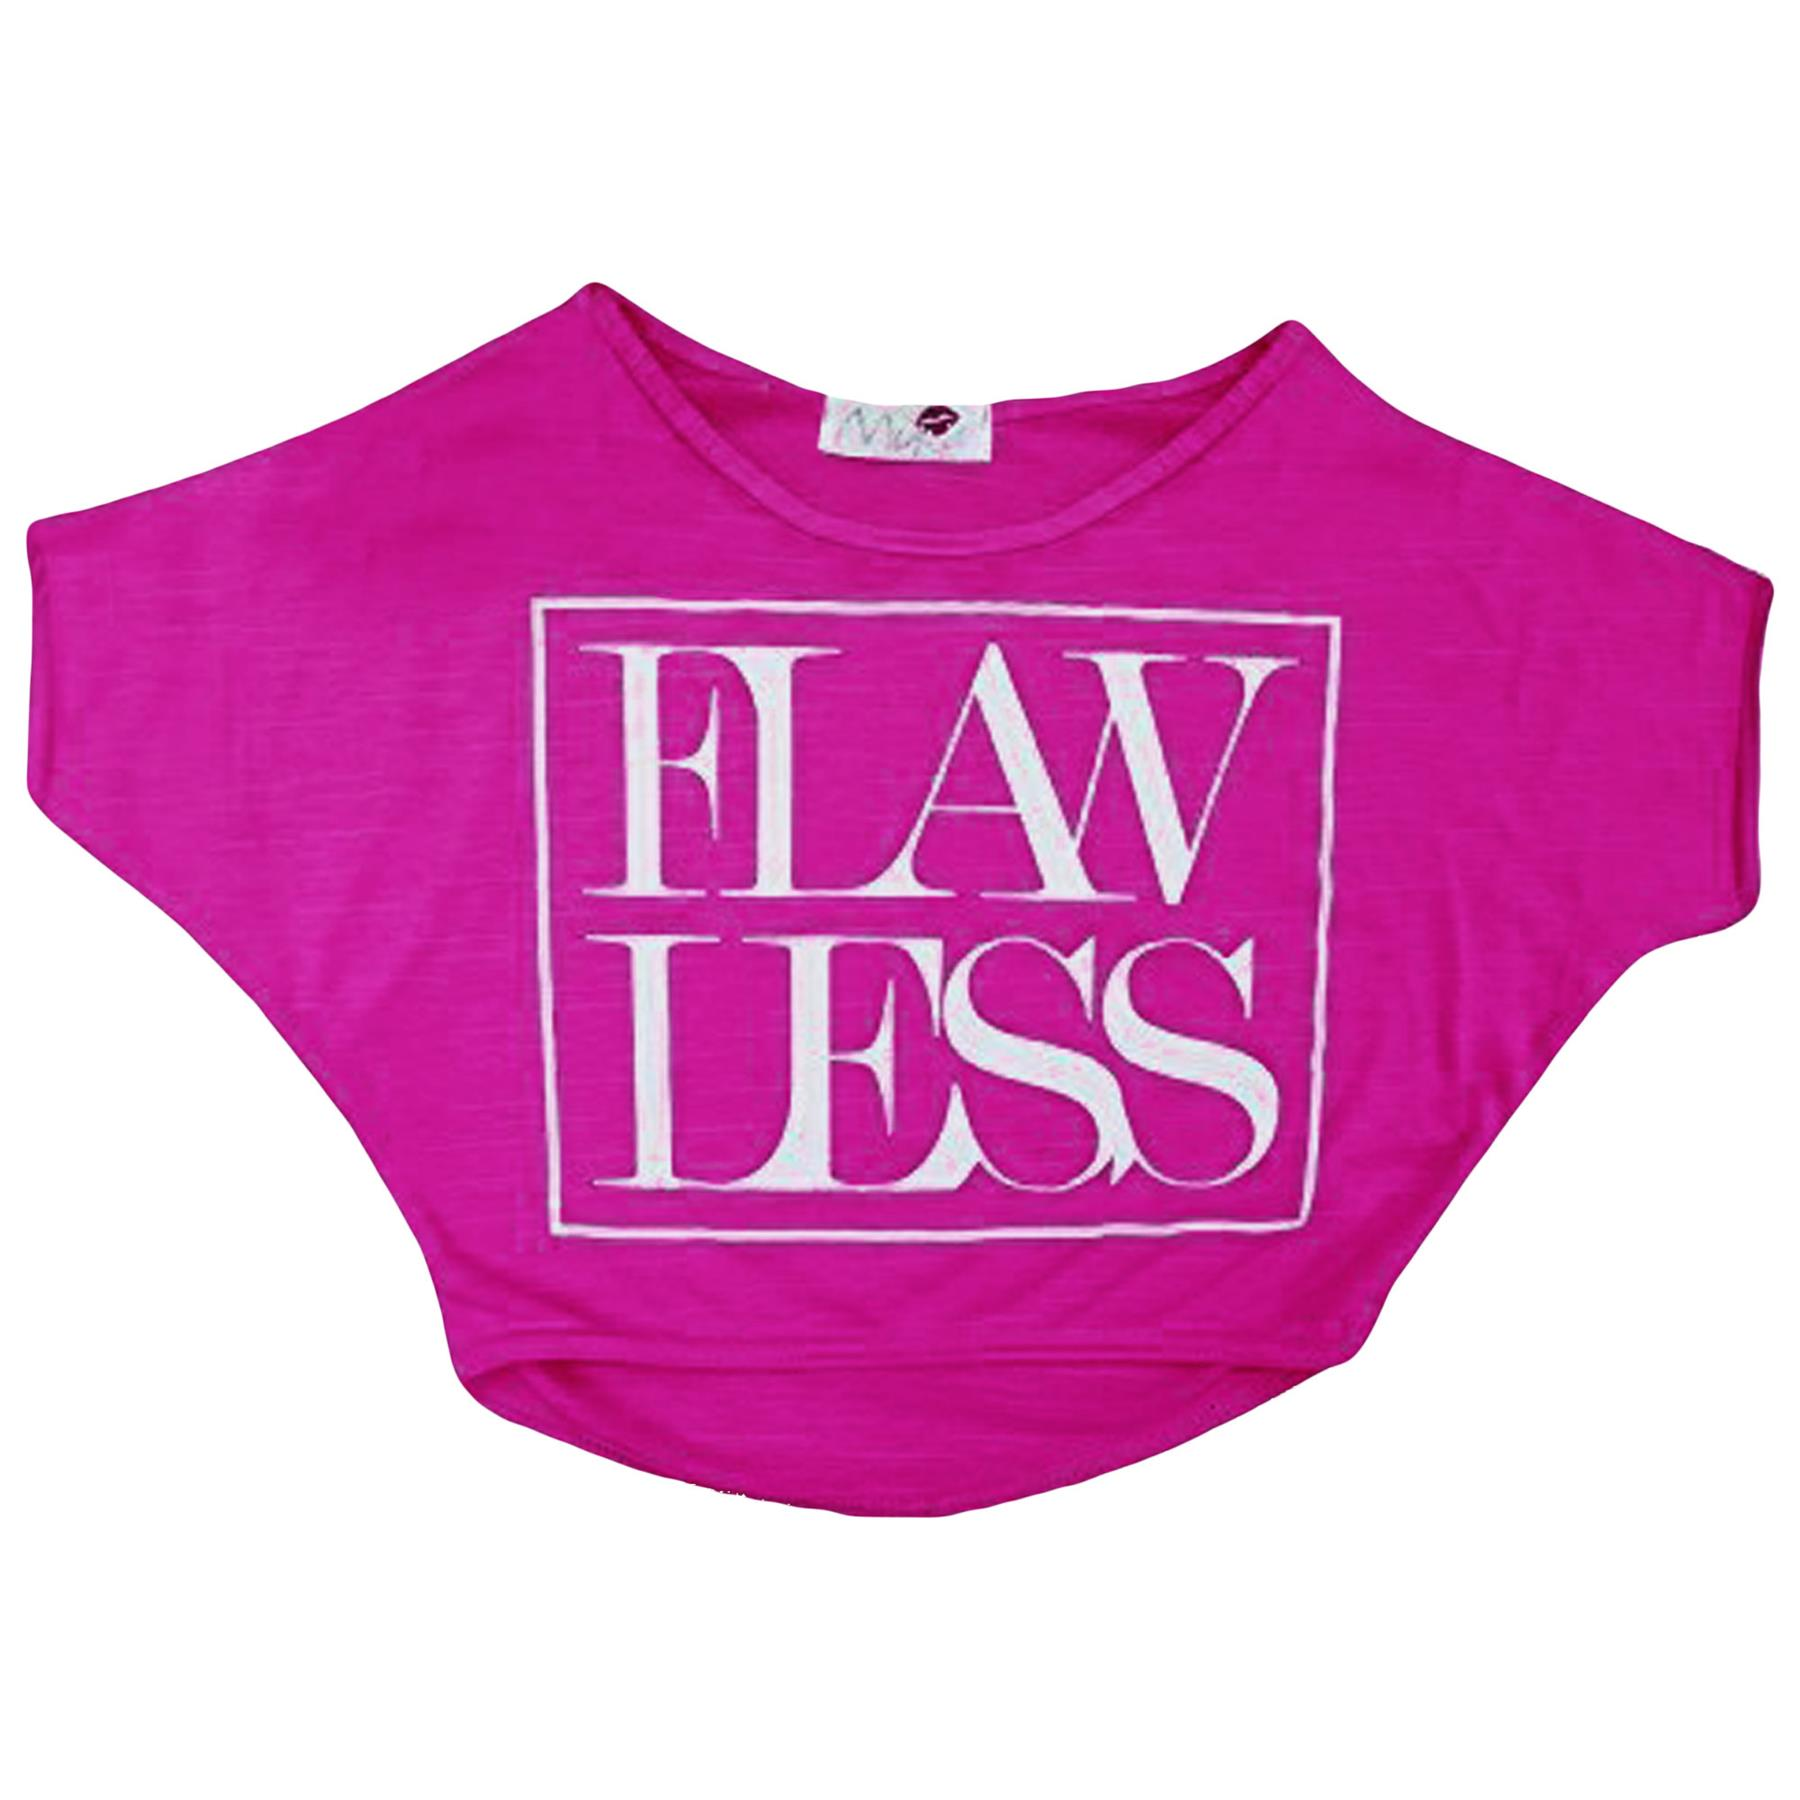 Kids-Girls-New-Season-034-FLAWLESS-034-Print-Crop-Top-Stylish-Fashion-T-Shirt-Age-7-13 miniatuur 17